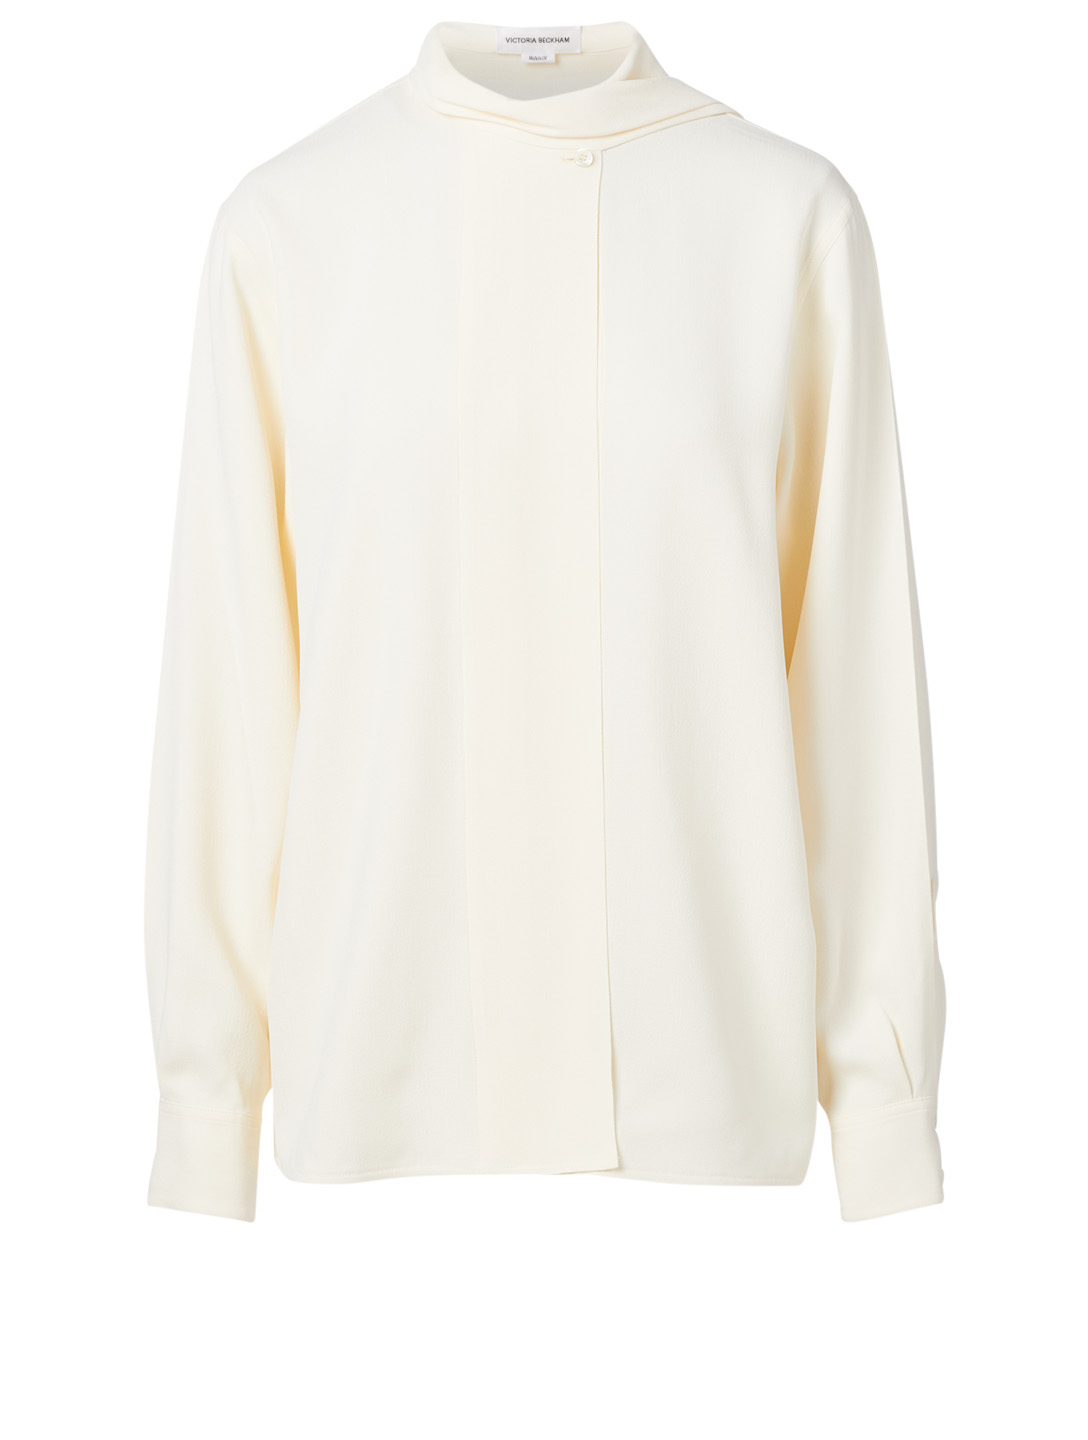 VICTORIA BECKHAM Scarf Neck Blouse Women's White